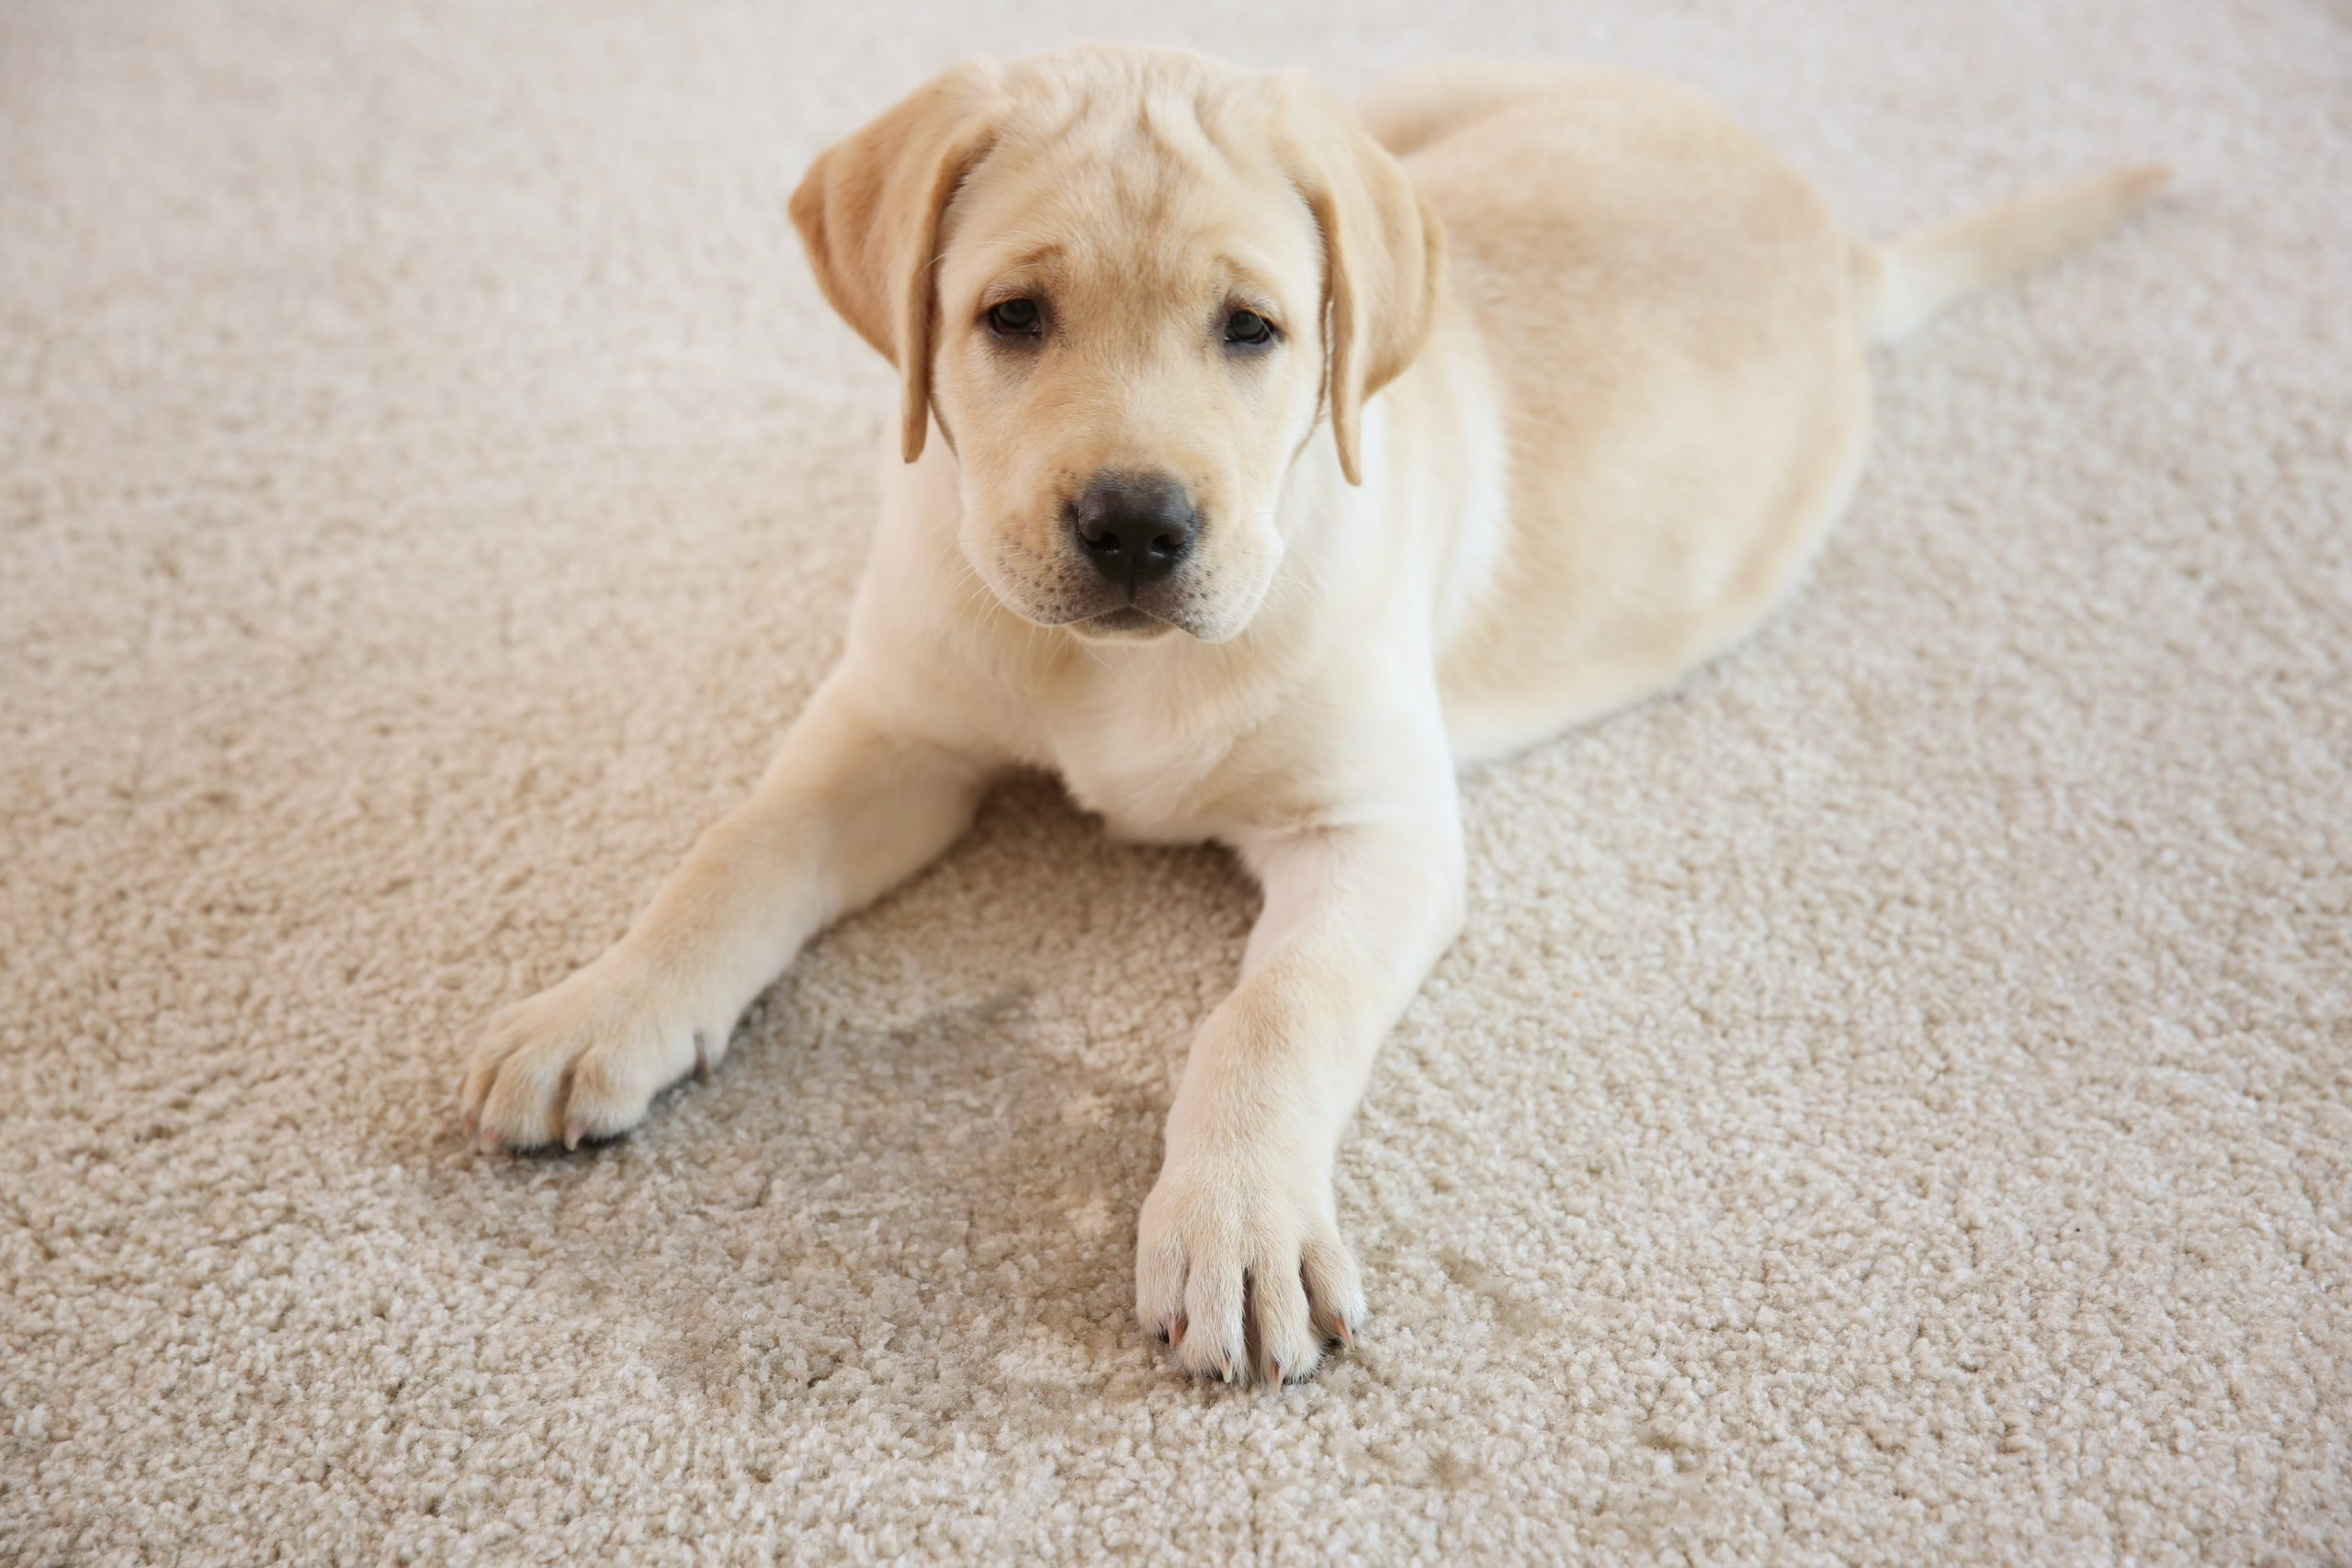 Try Our Pet Stain and Odor Removal Treatment to keep your carpet and home clean for those you love